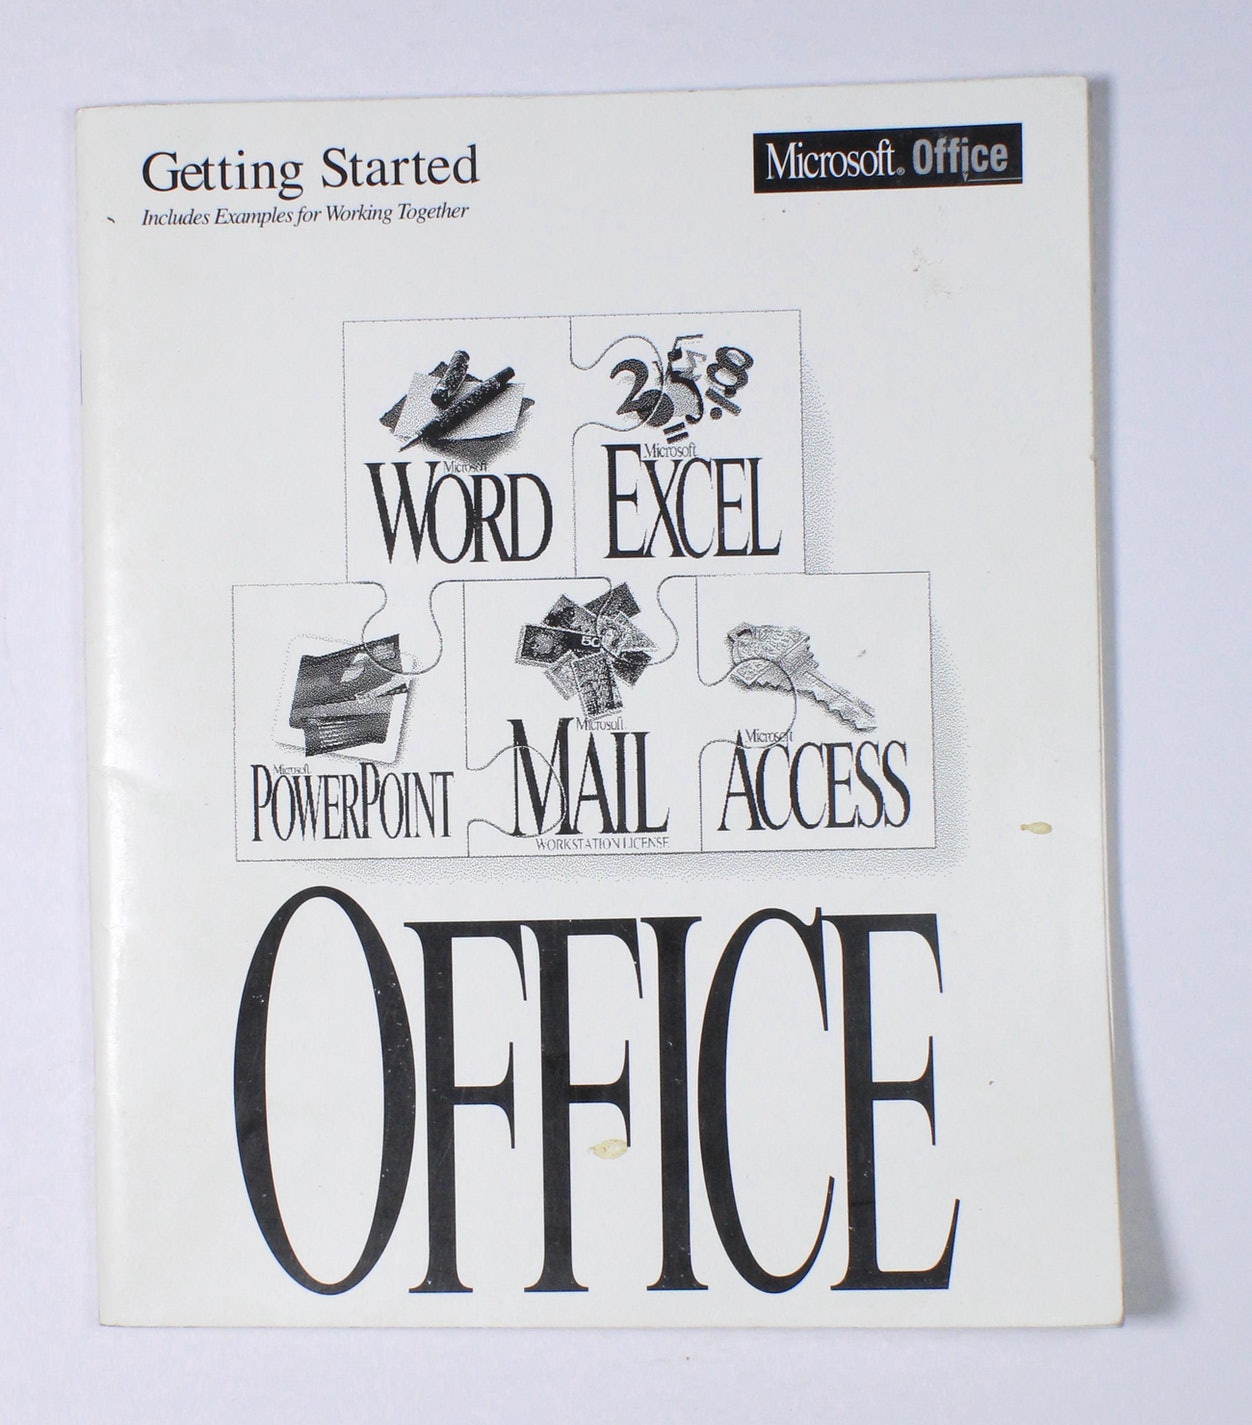 Microsoft Office: Getting Started